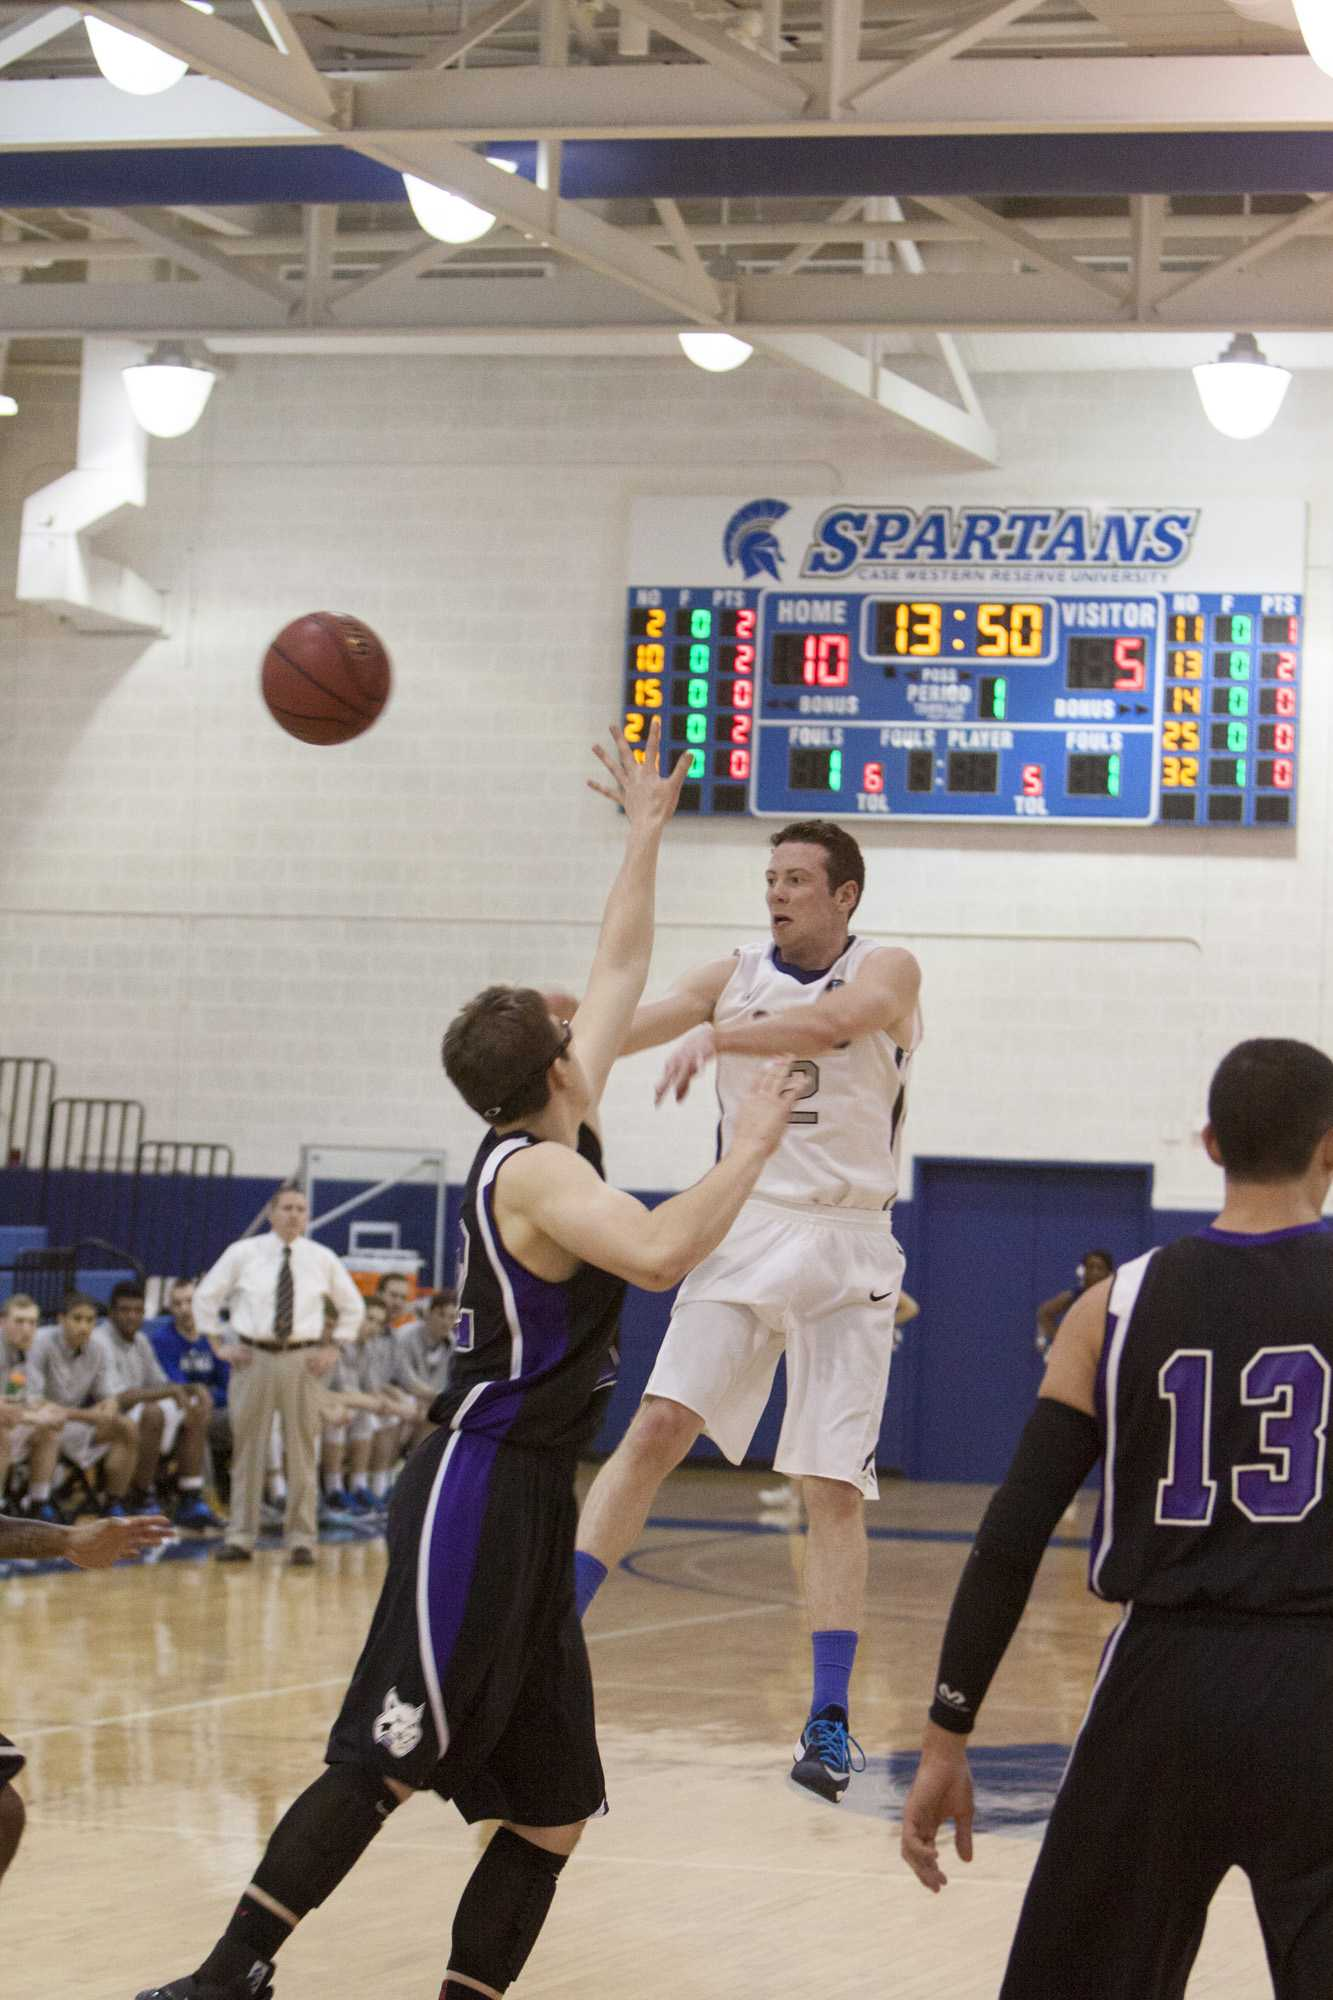 The Men's Basketball team swept the tournament before losing to Denison this week.